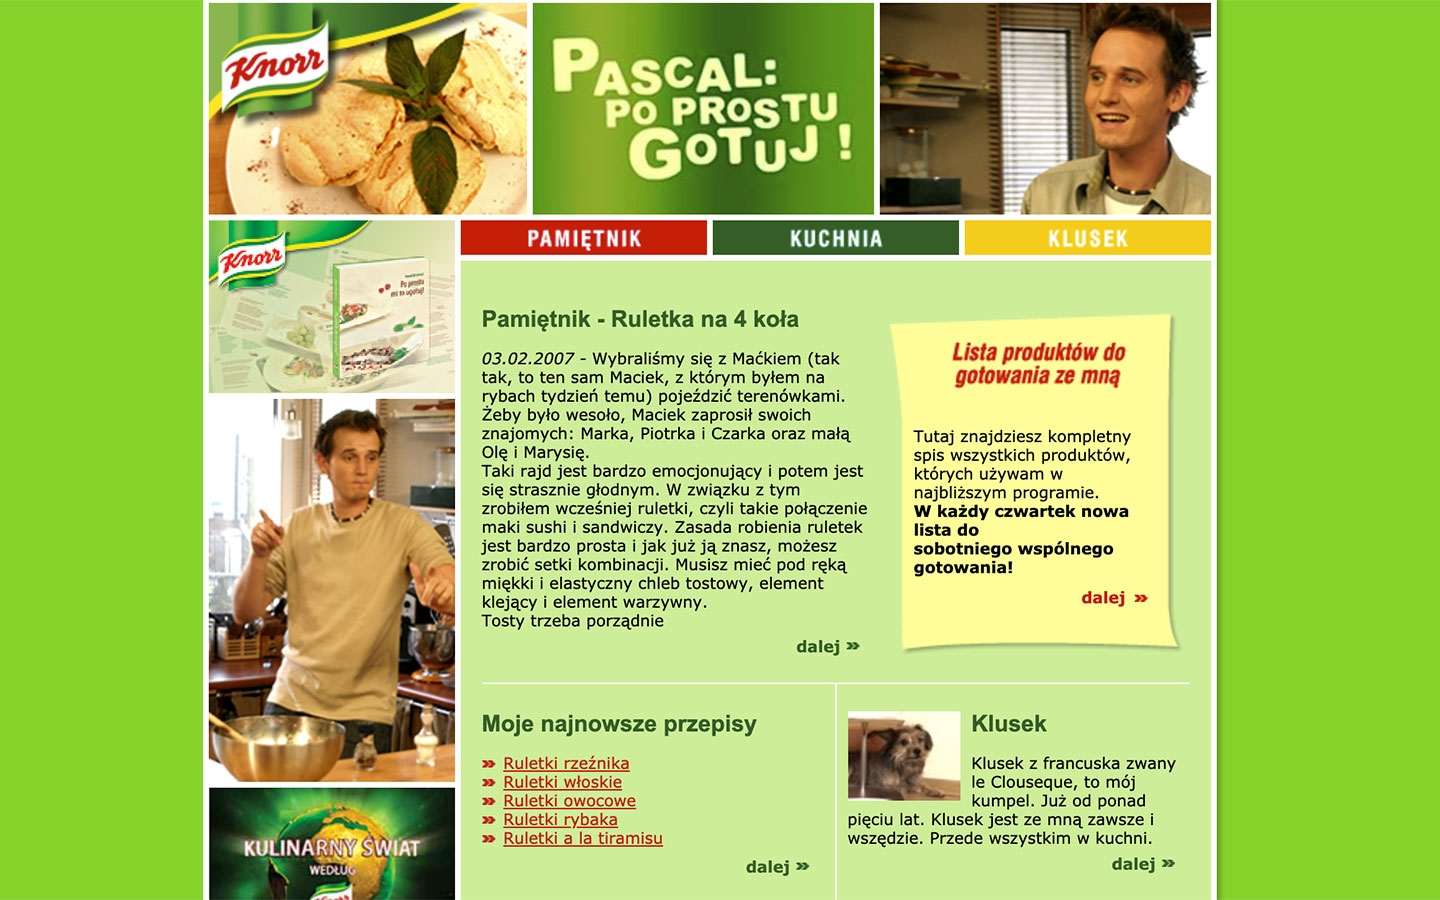 Pascal: Po Prostu Gotuj! | poprostugotuj.onet.pl | 2004 (Screen Only 03) © echonet communication